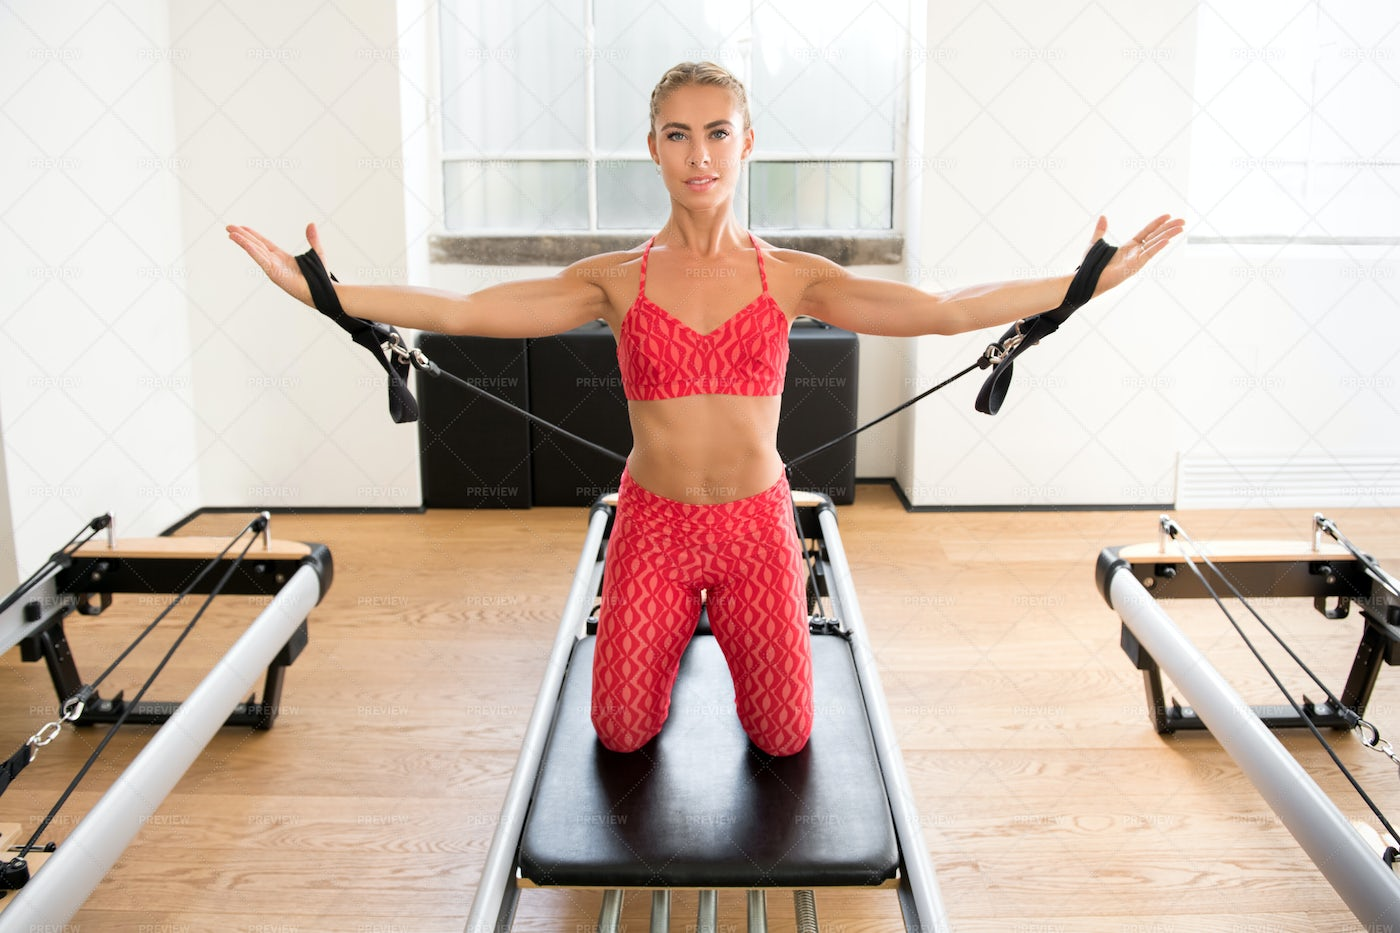 Arm Workout With Resistance Straps: Stock Photos